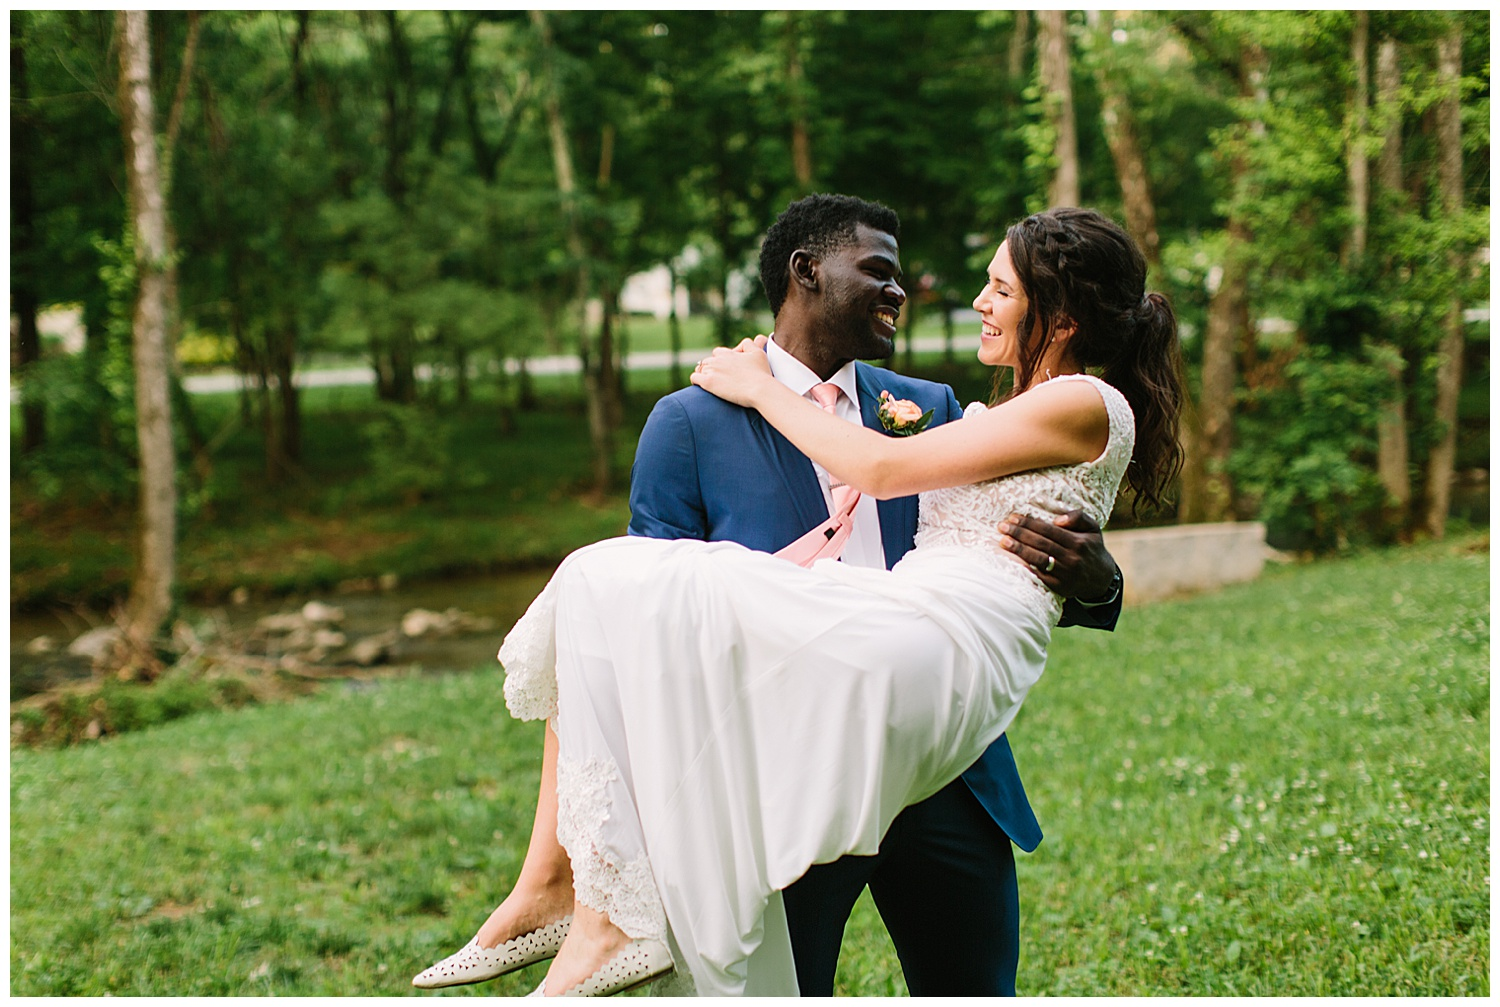 trent.and.kendra.photography.jeffersonian.louisville.wedding-146.jpg